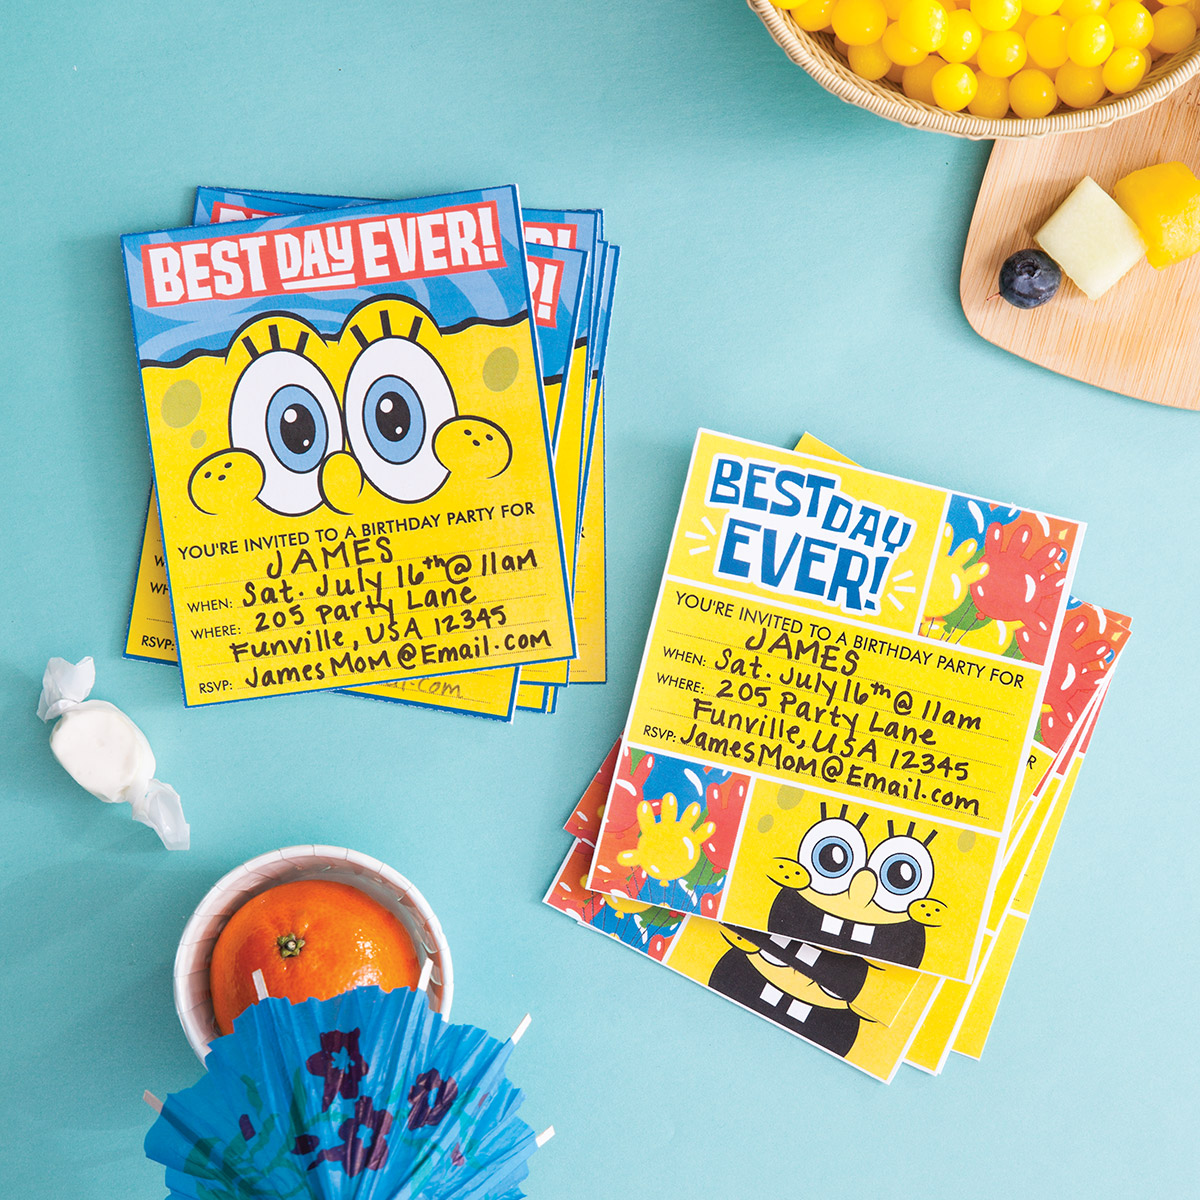 plan a spongebob squarepants party  nickelodeon parents, party invitations